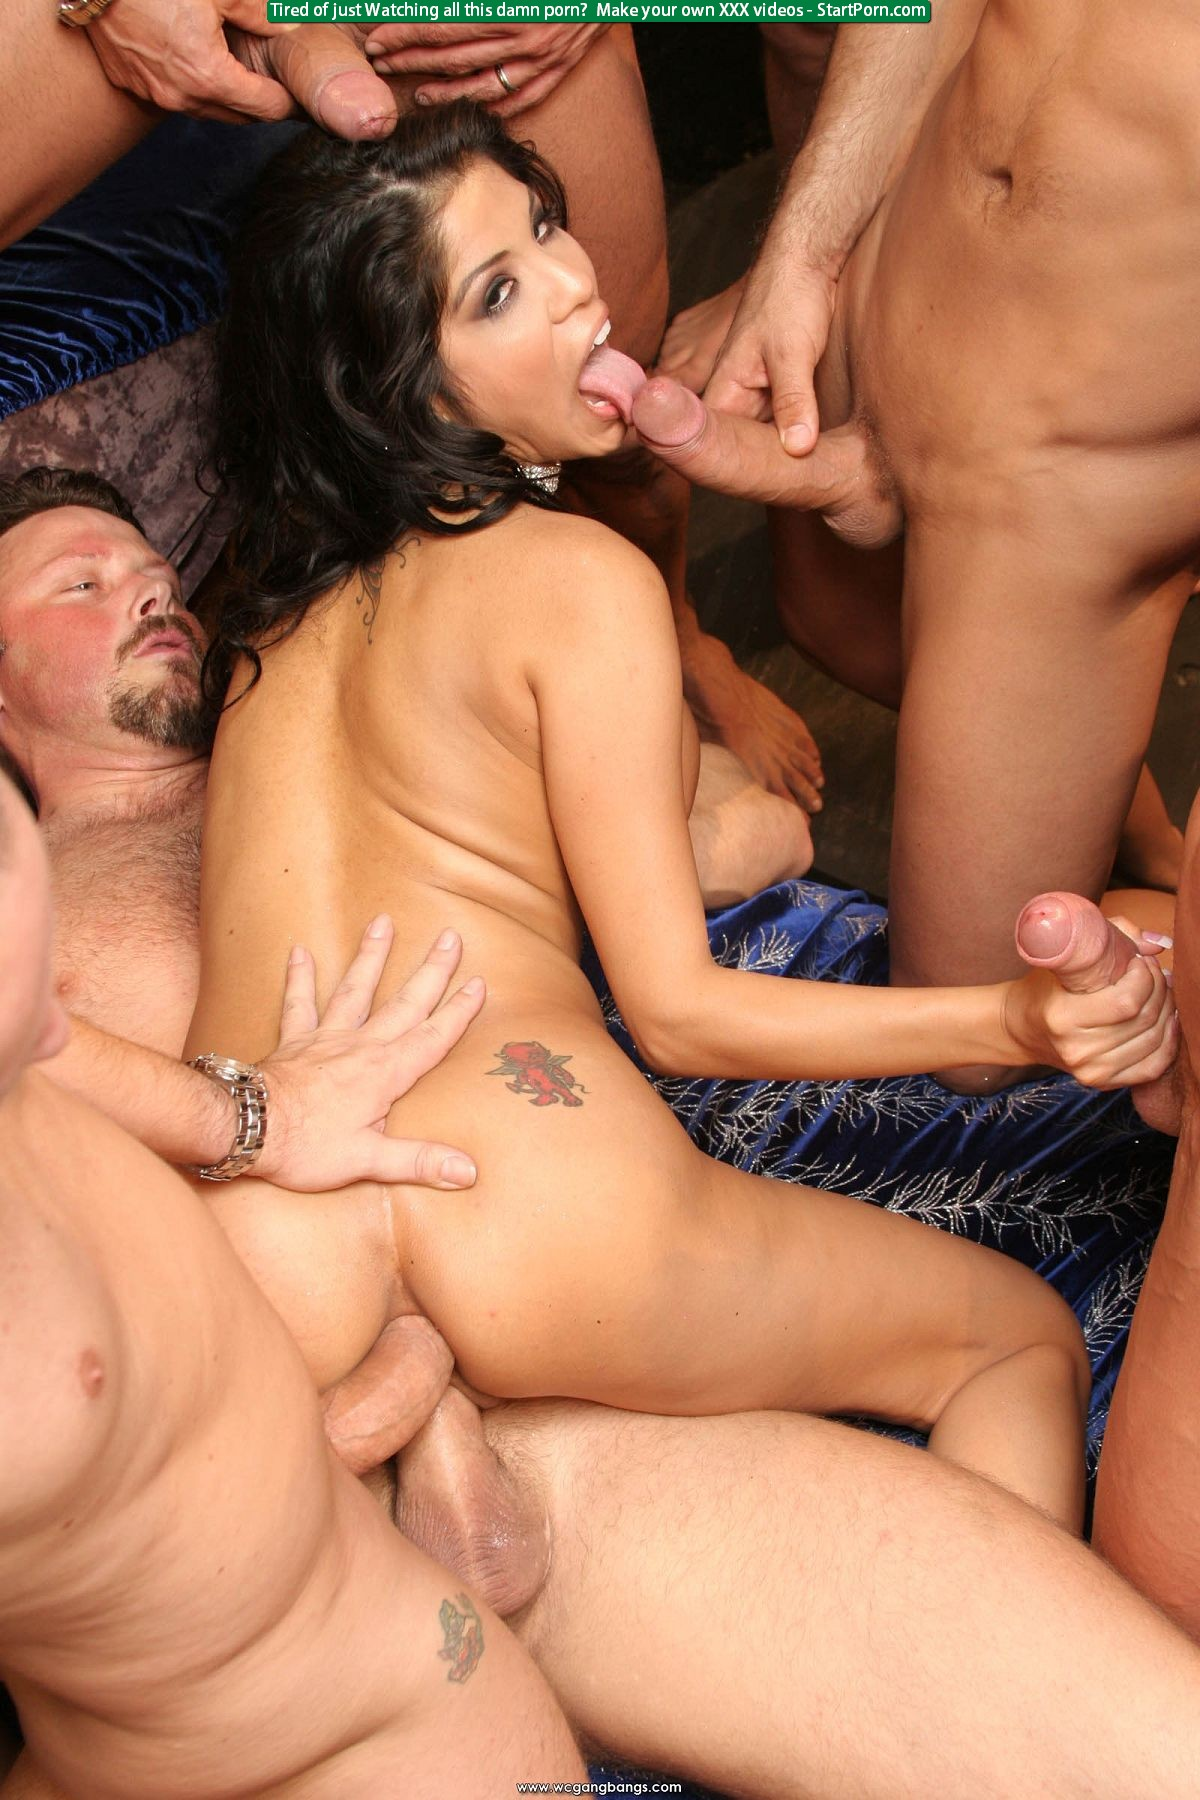 Free atfight gangbang movies entertaining answer